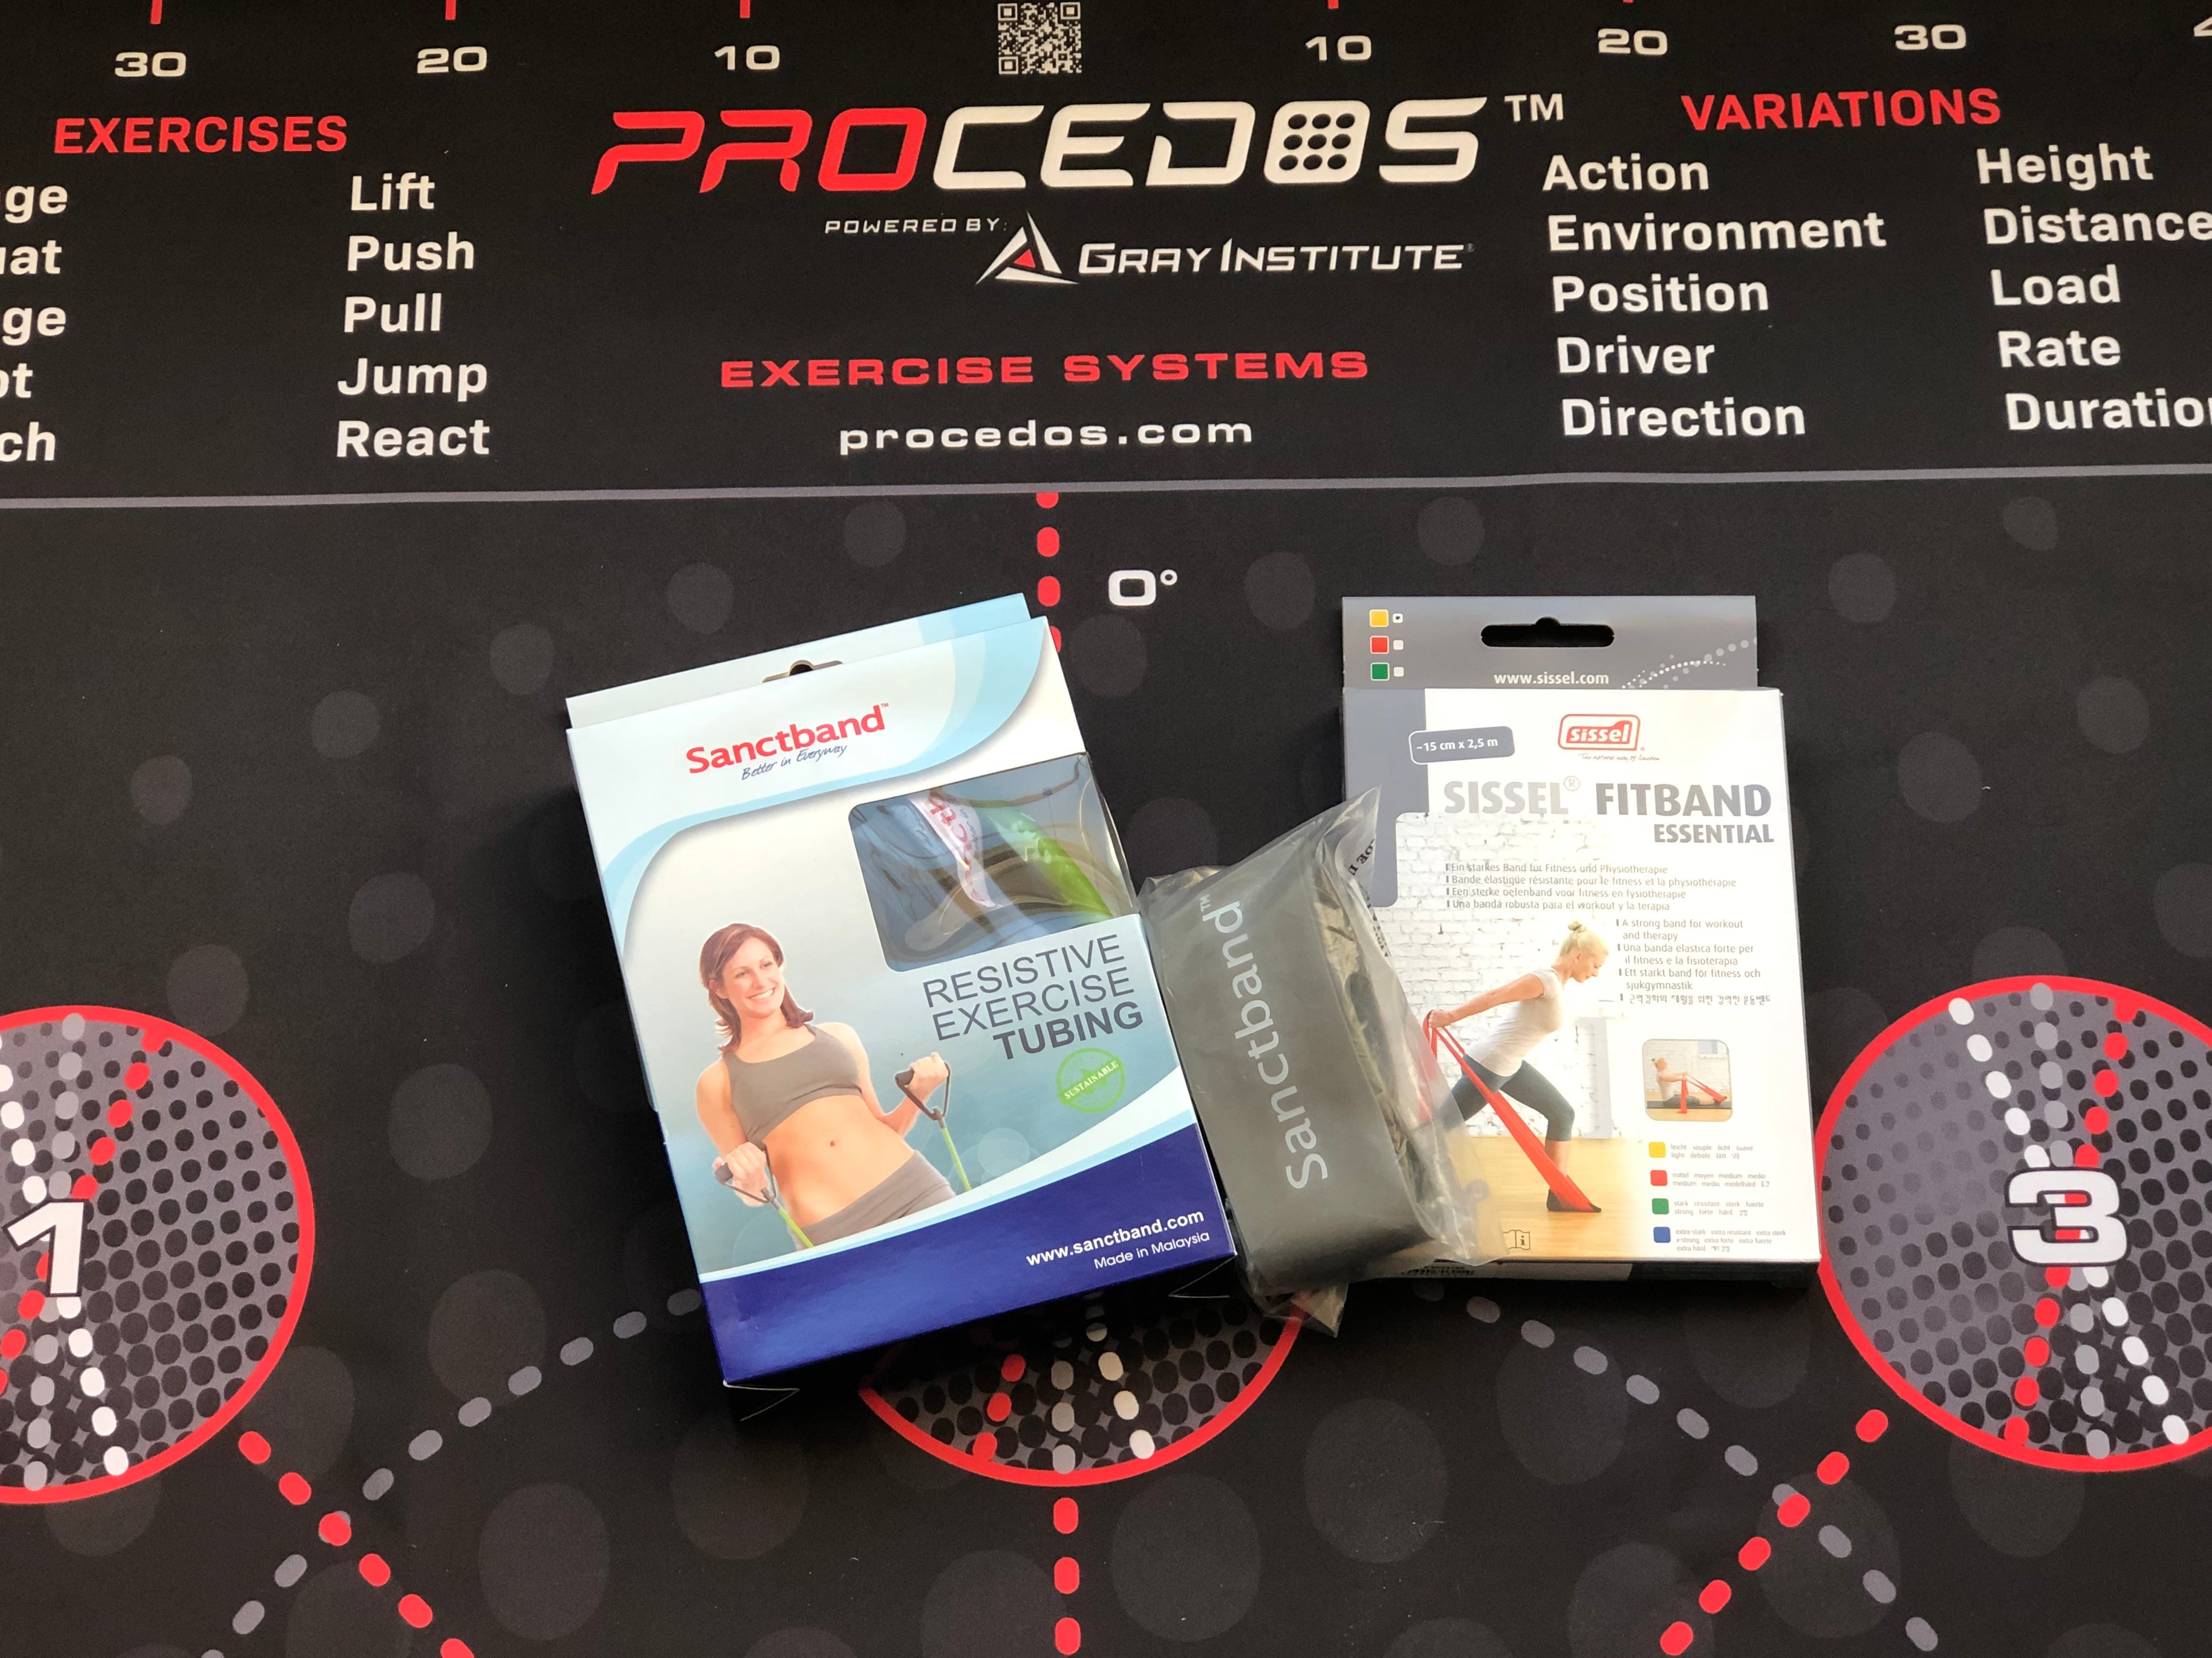 TRAINING KIT -PROCEDOS PLATFORM 9™ + TRAINING PROGRAMS